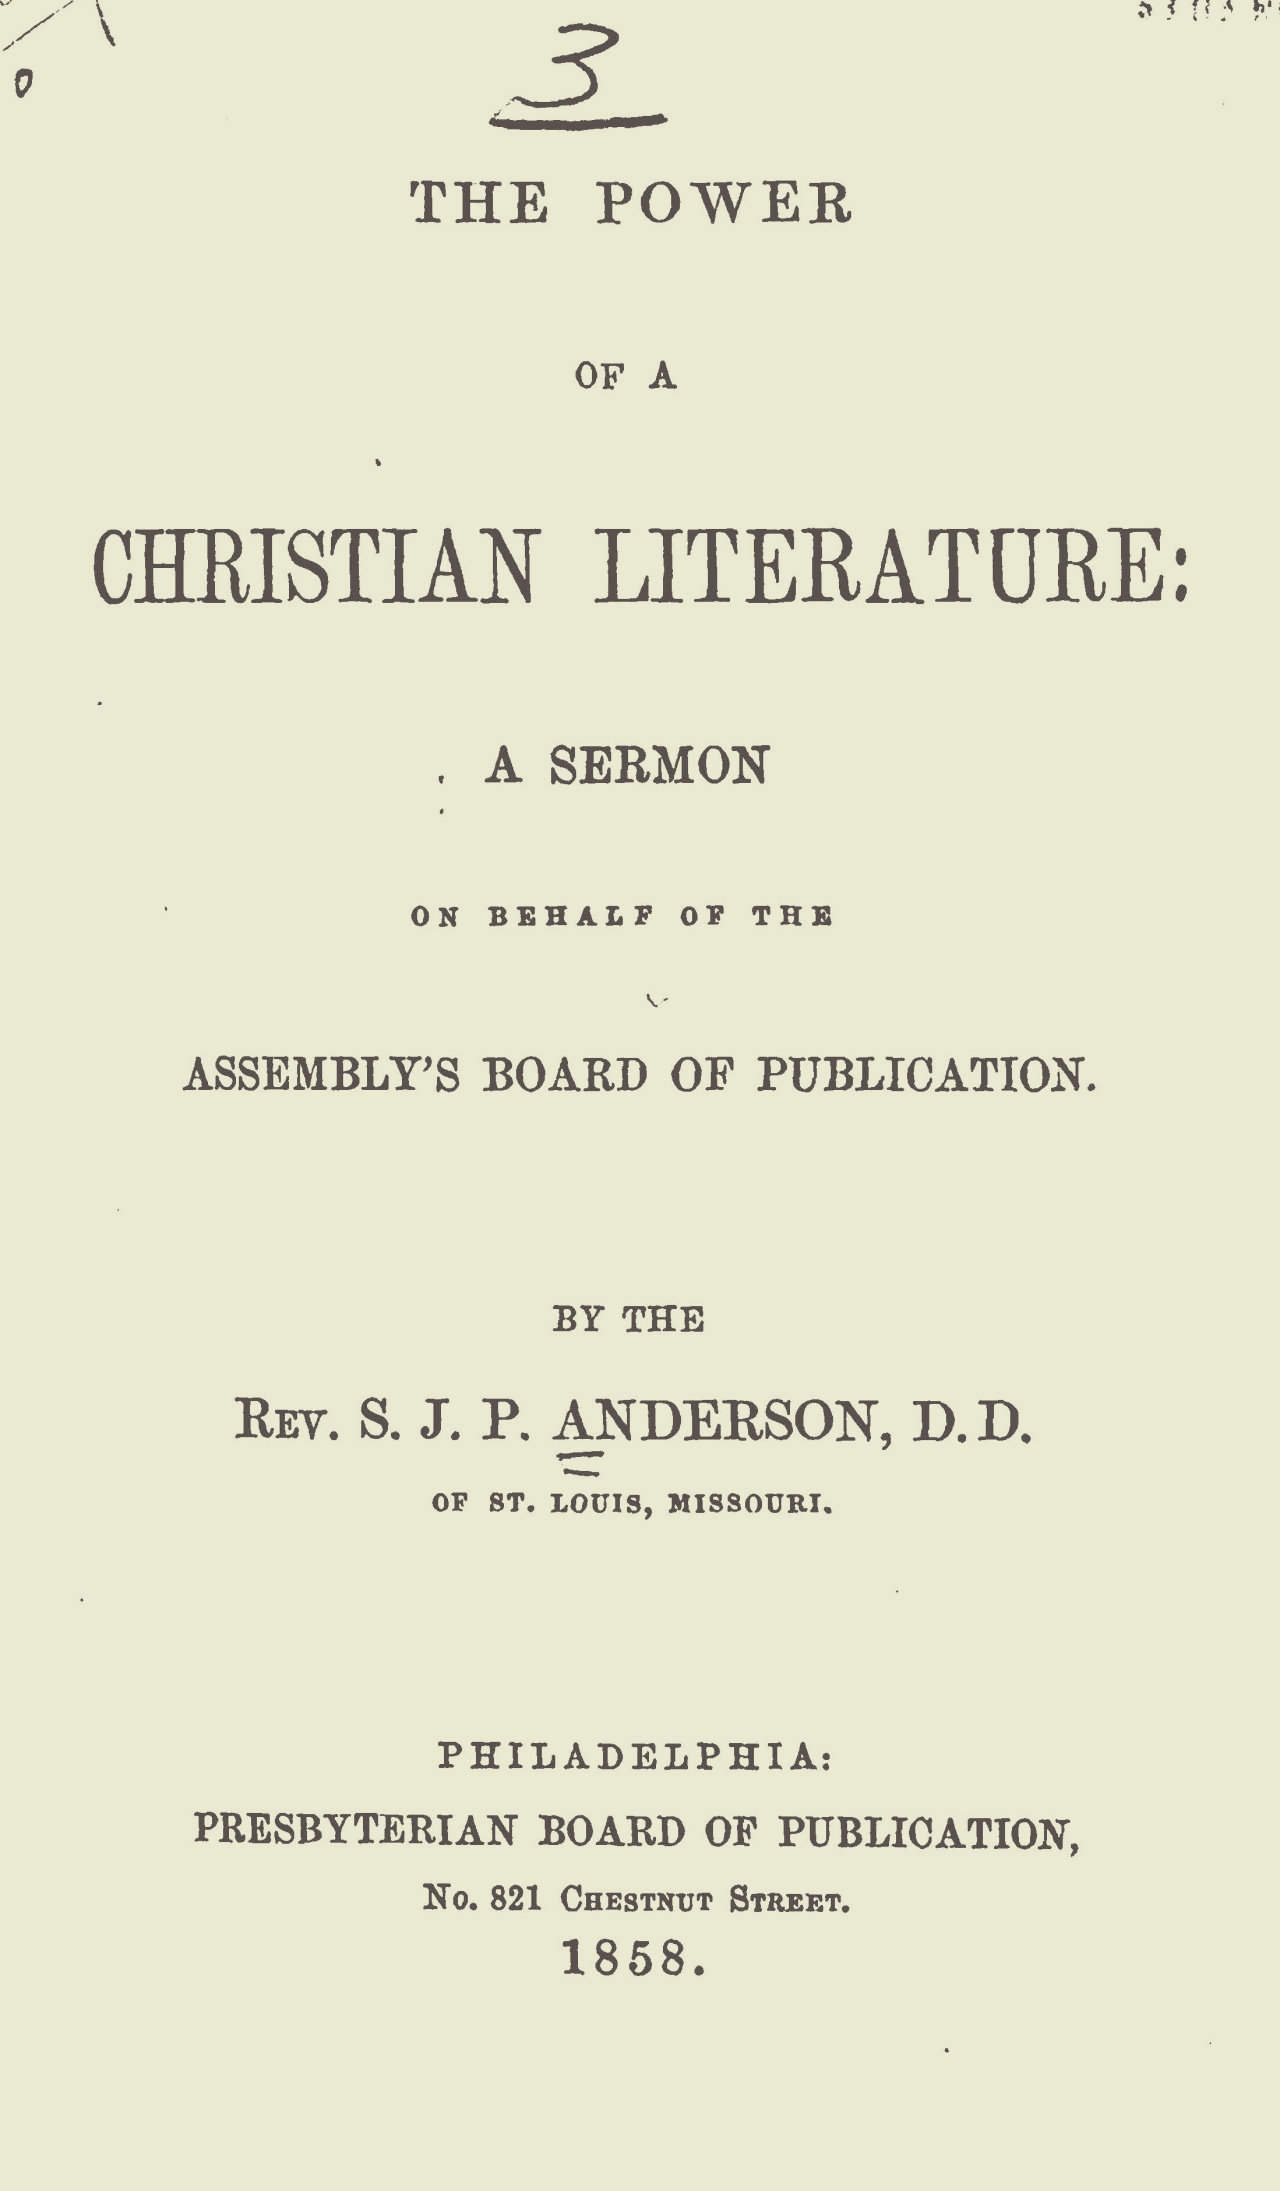 Anderson, Samuel James Pierce, The Power of a Christian Literature Title Page.jpg